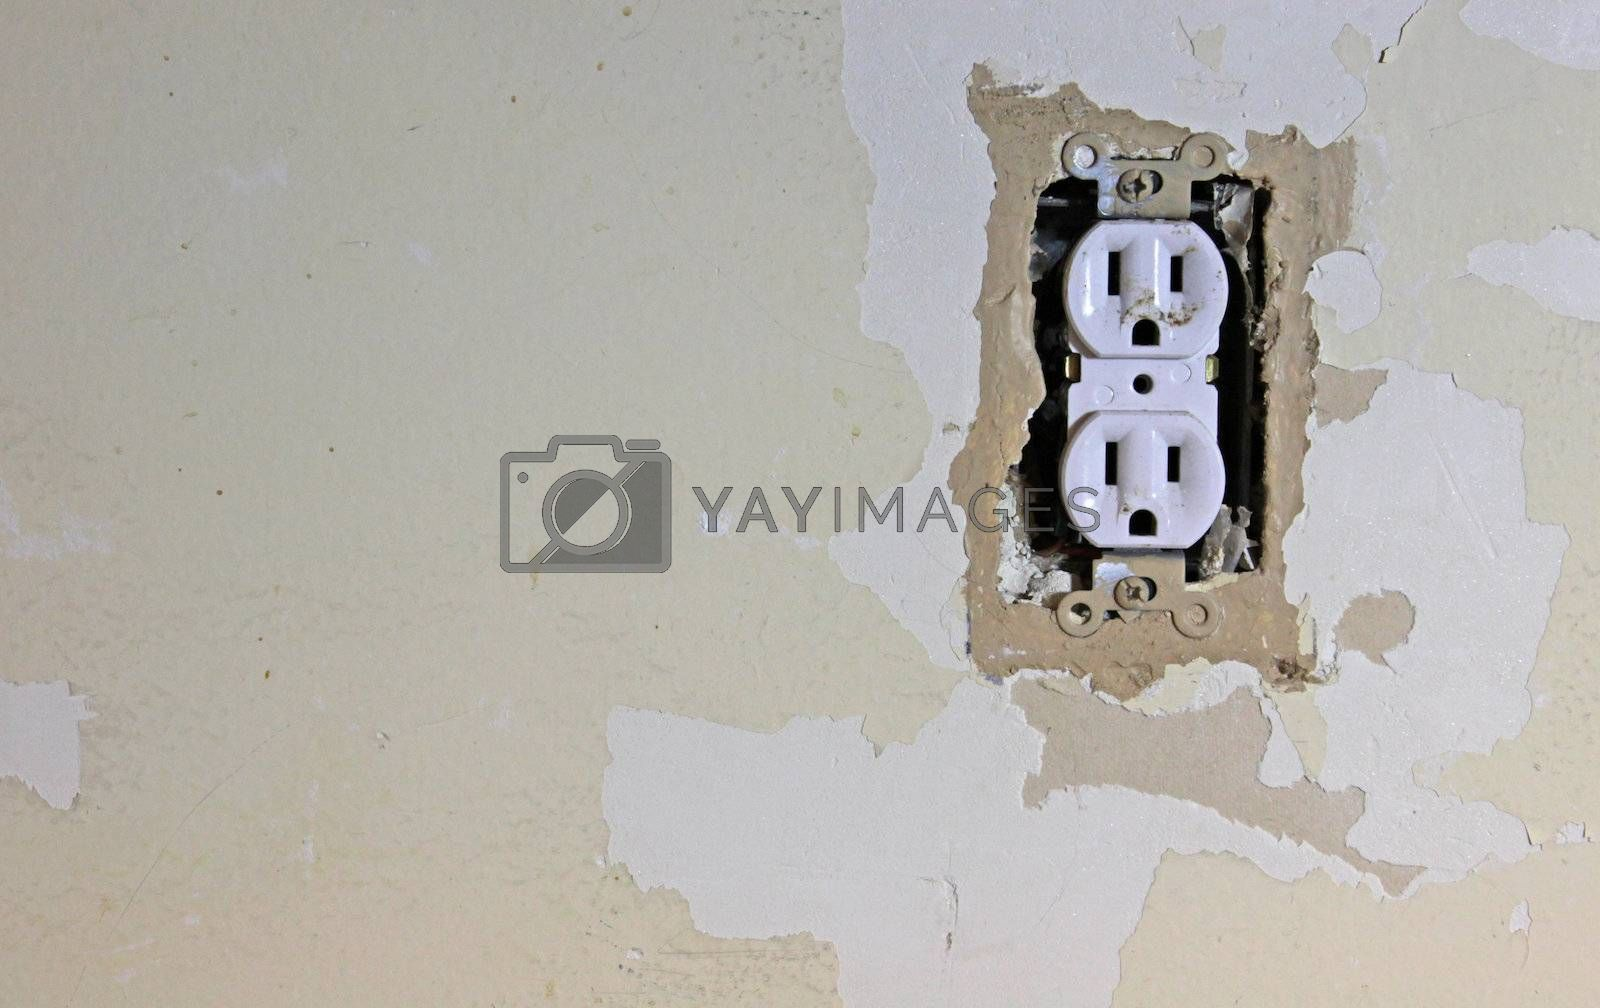 A dirty electrical outlet exposed during a renovation and the surrounding dry wall.